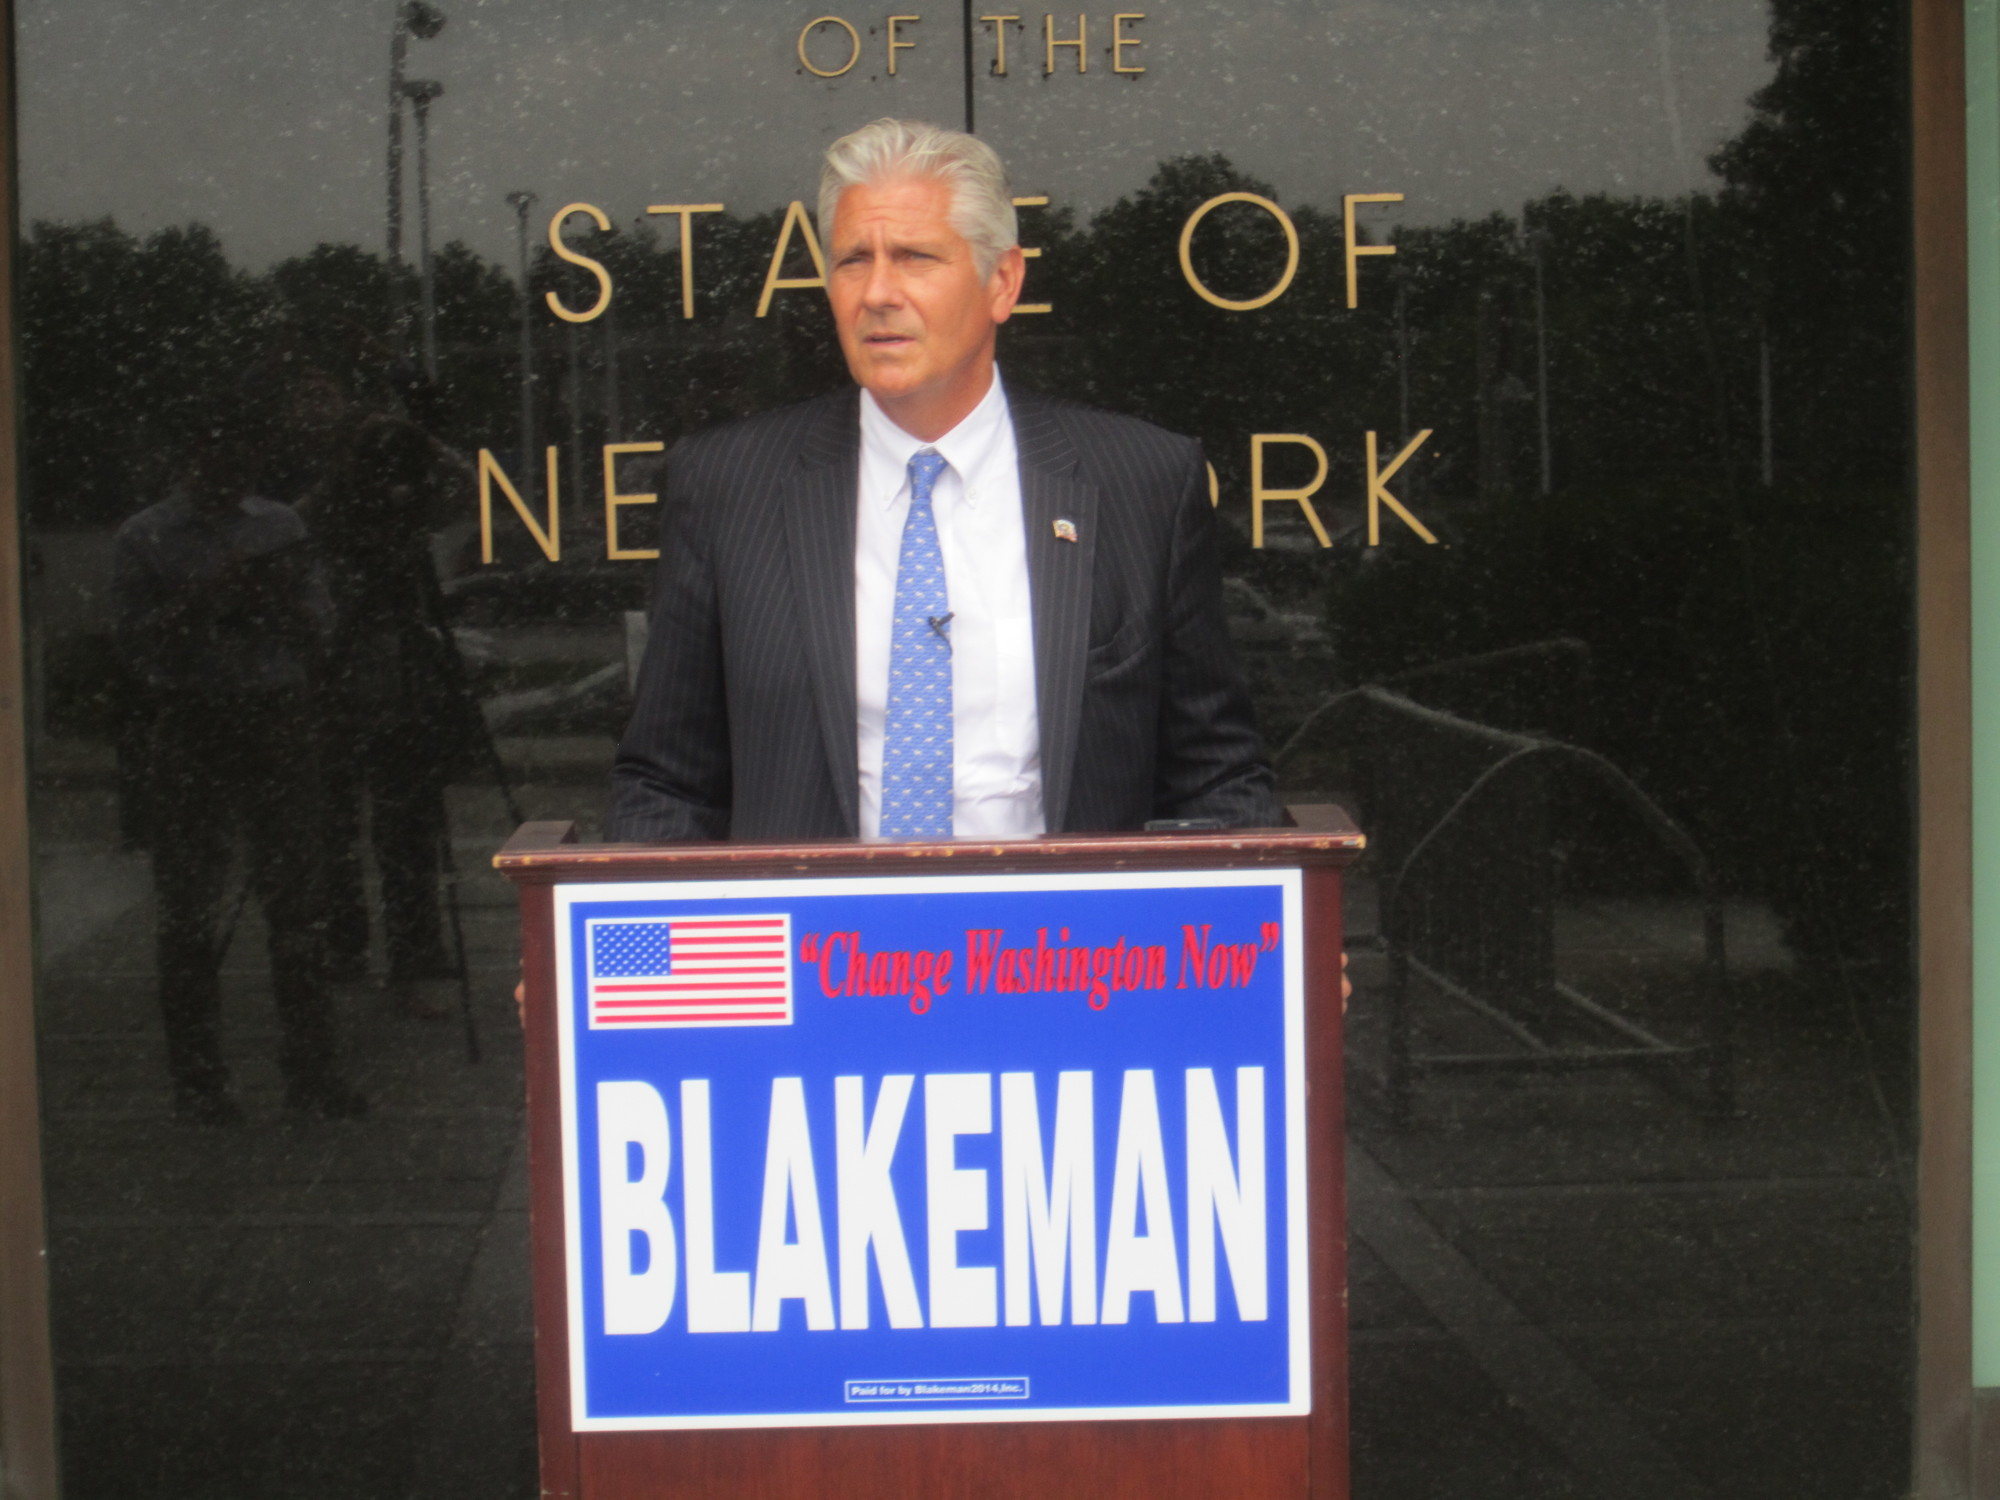 Bruce Blakeman, a former presiding officer of the Nassau County Legislature and a Republican candidate for Congress, held a press conference on Aug. 6 in Mineola.